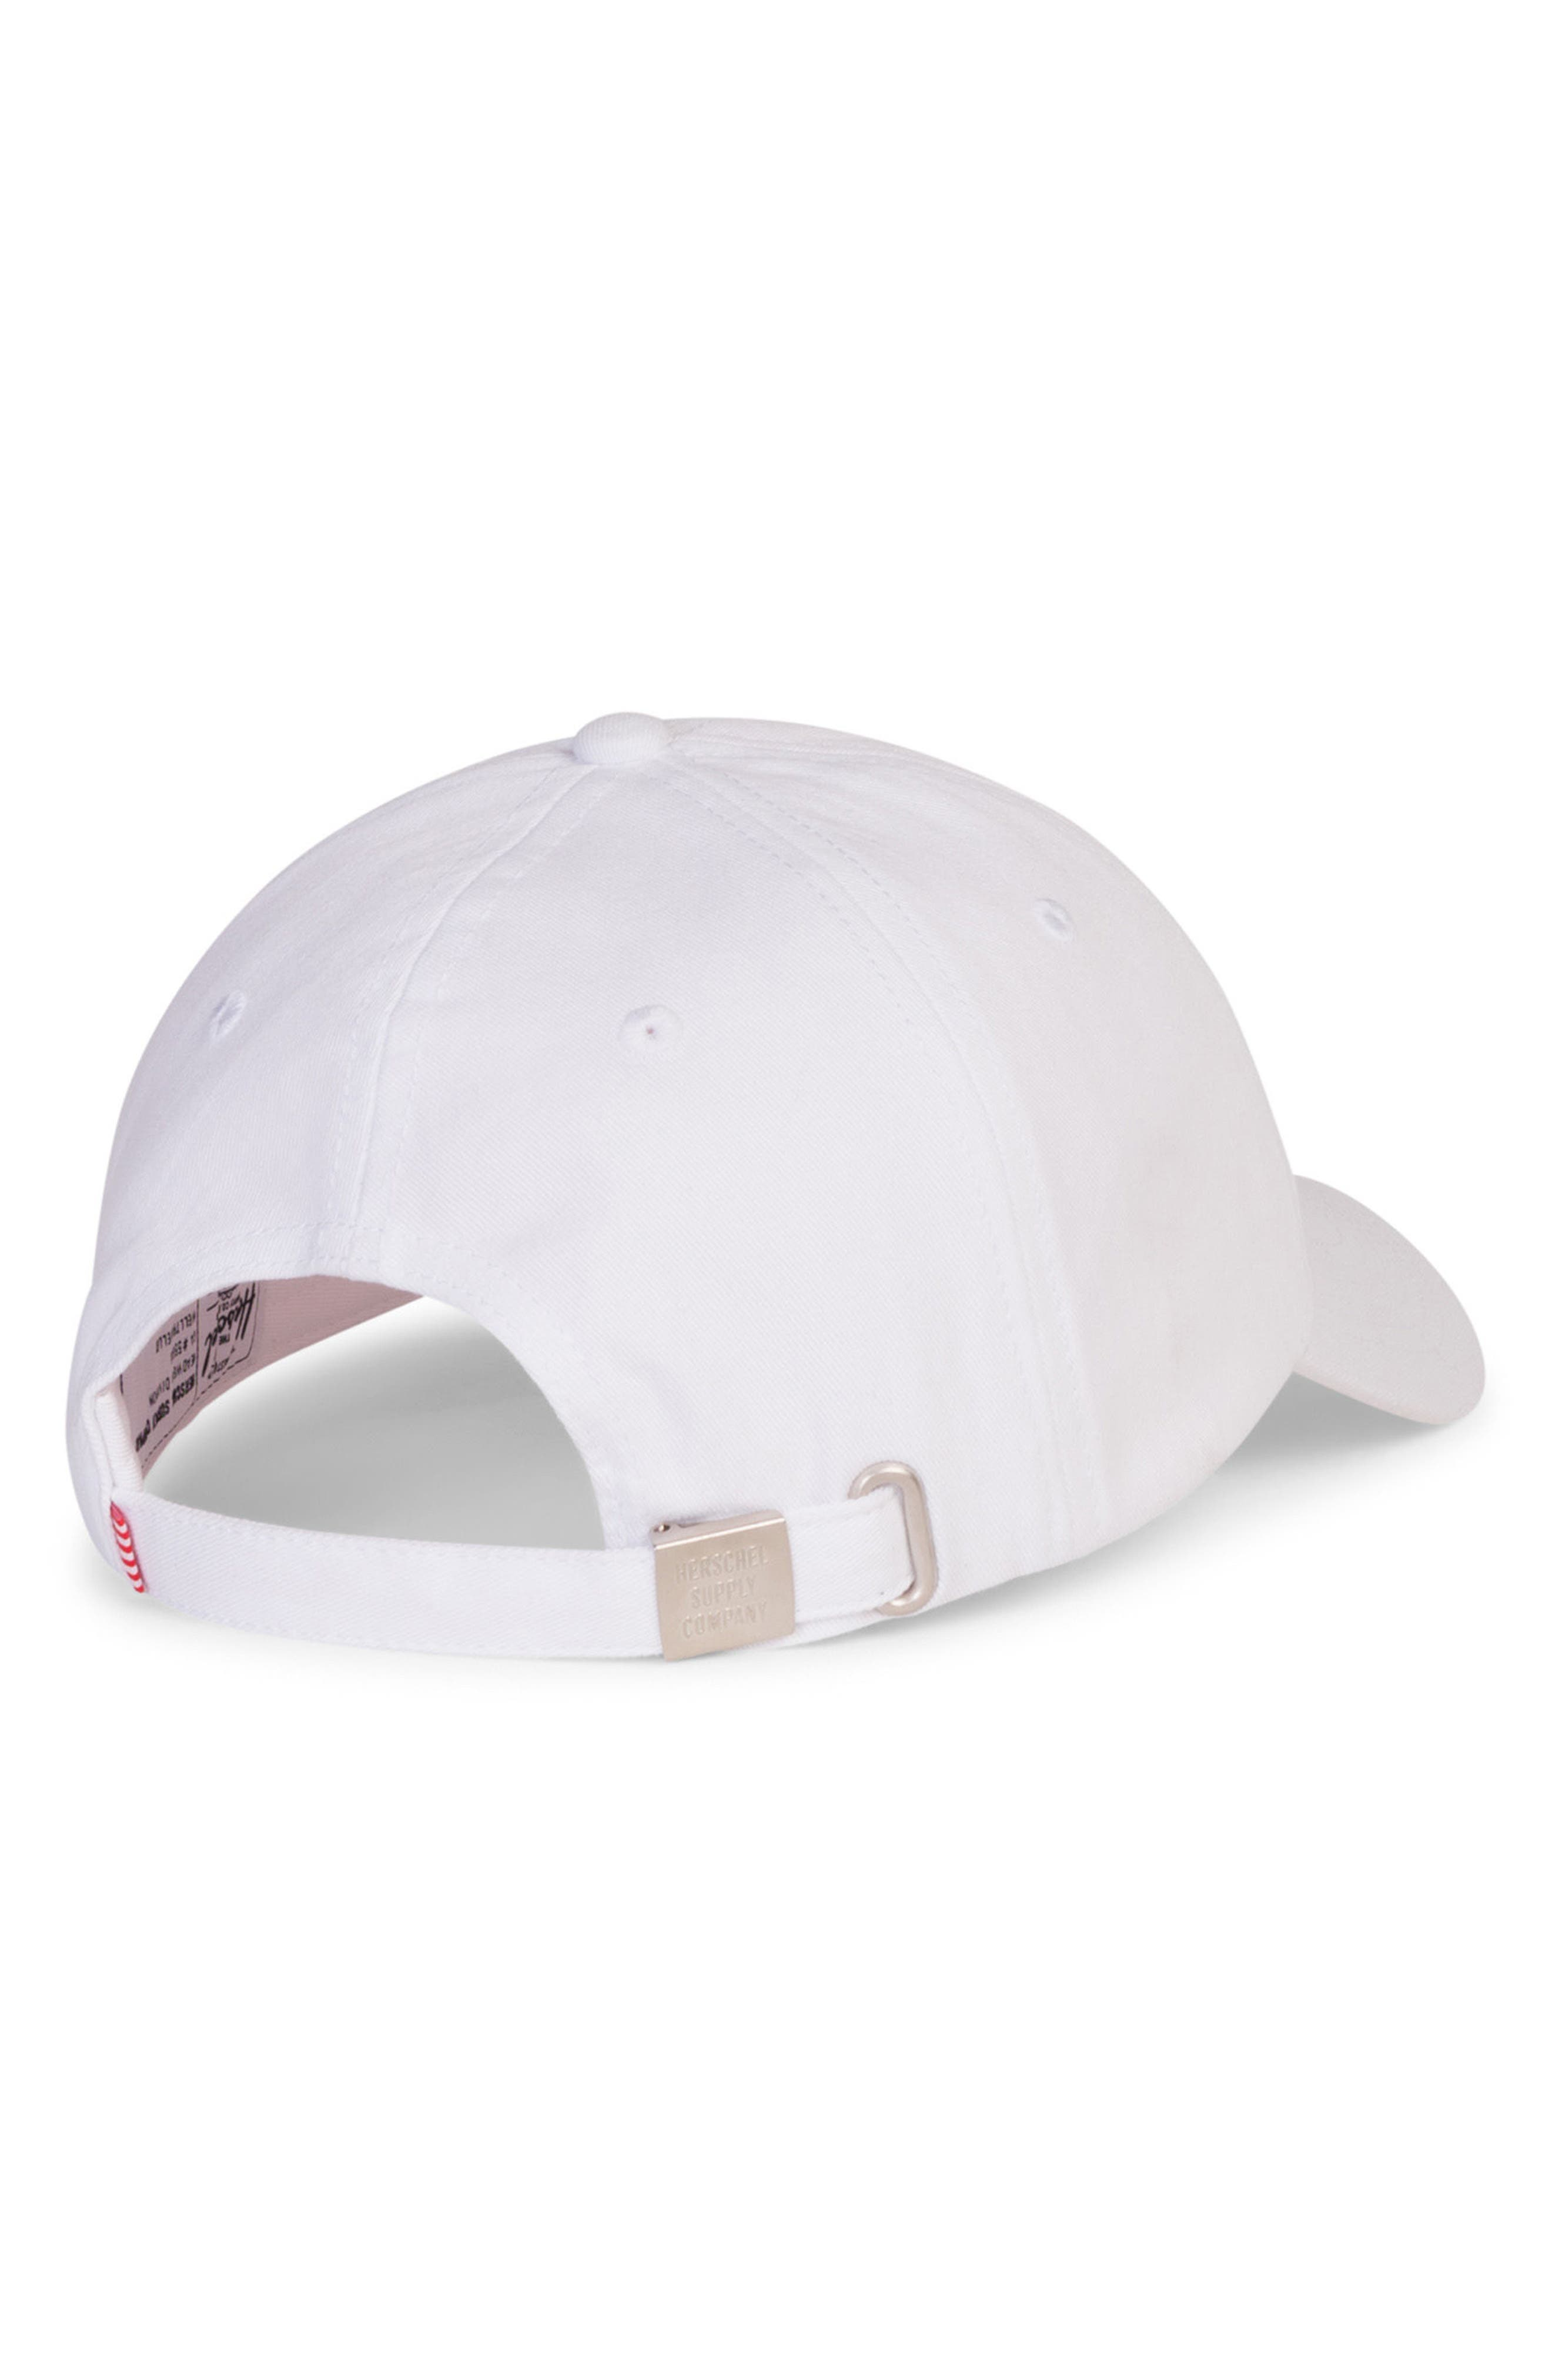 Sylas Baseball Cap,                             Alternate thumbnail 3, color,                             105